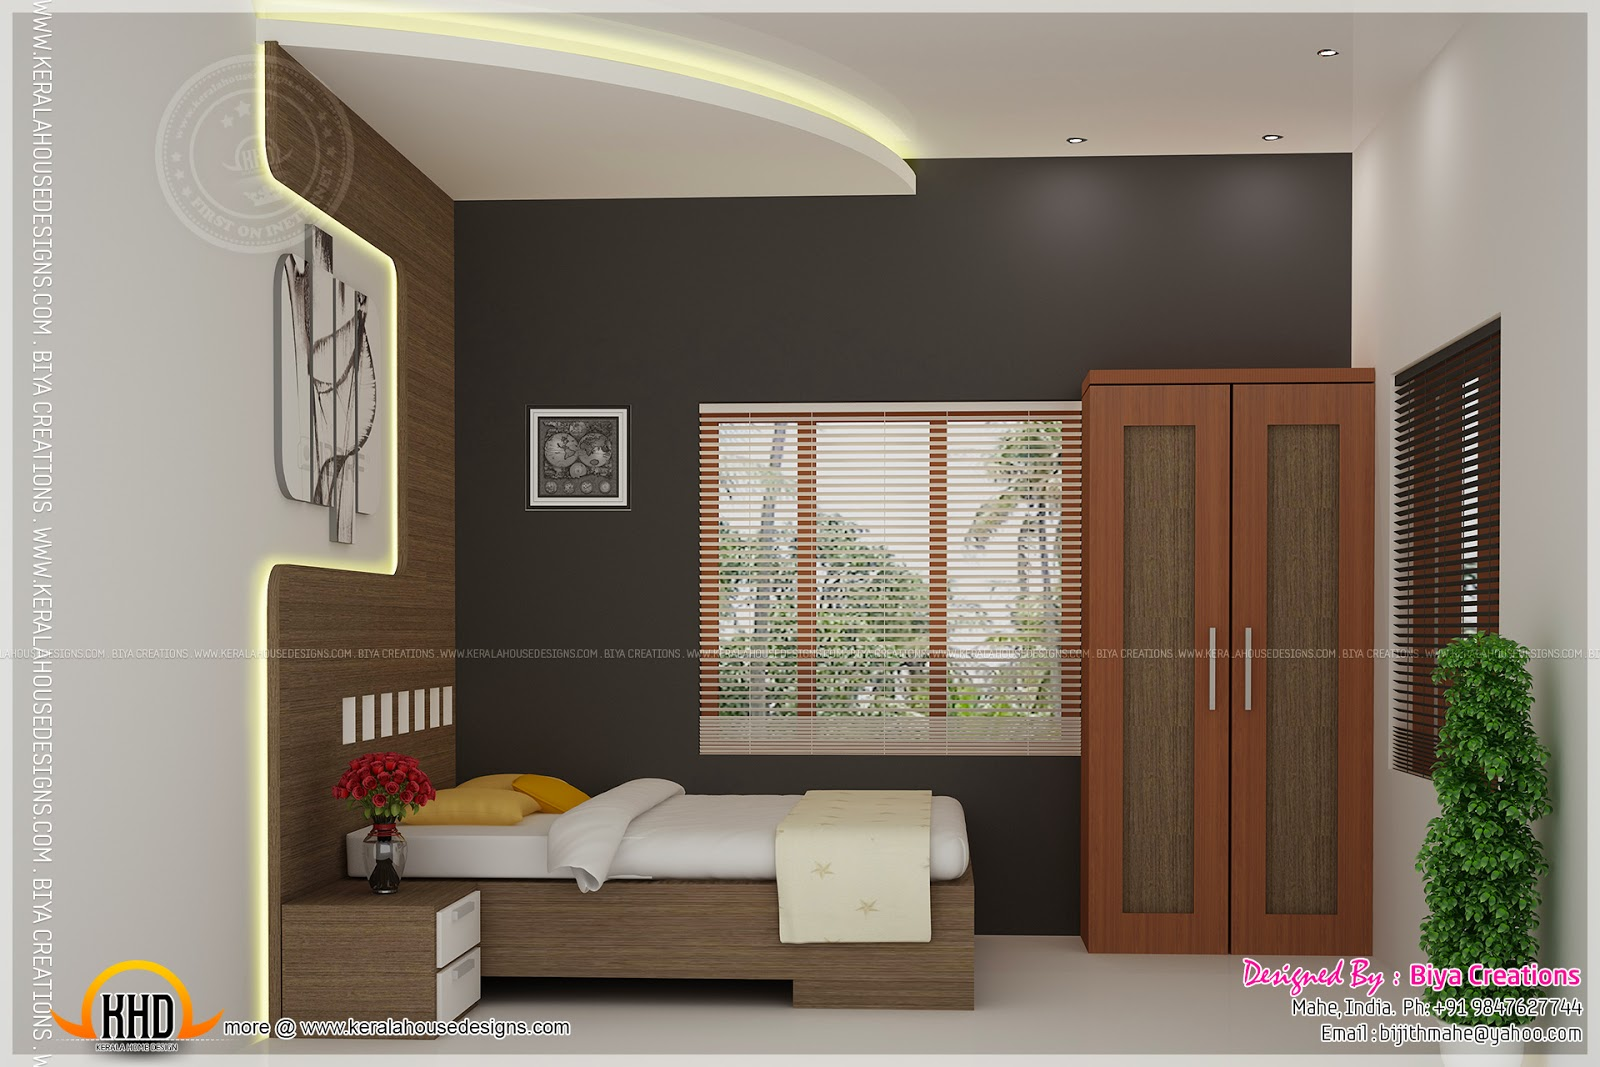 Bedroom kid bedroom and kitchen interior kerala home for Simple indian bedroom interior design ideas